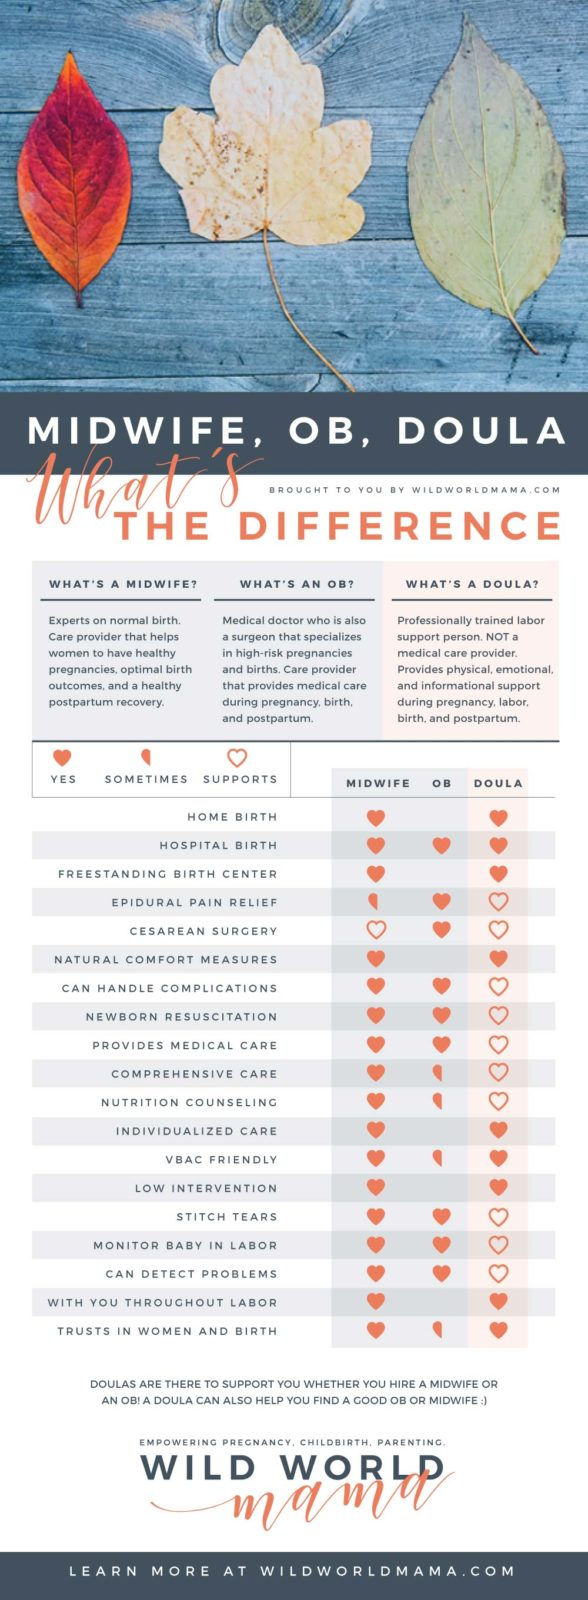 Wild World Mama - Midwife, OB, Doula. What's the Difference Infographic